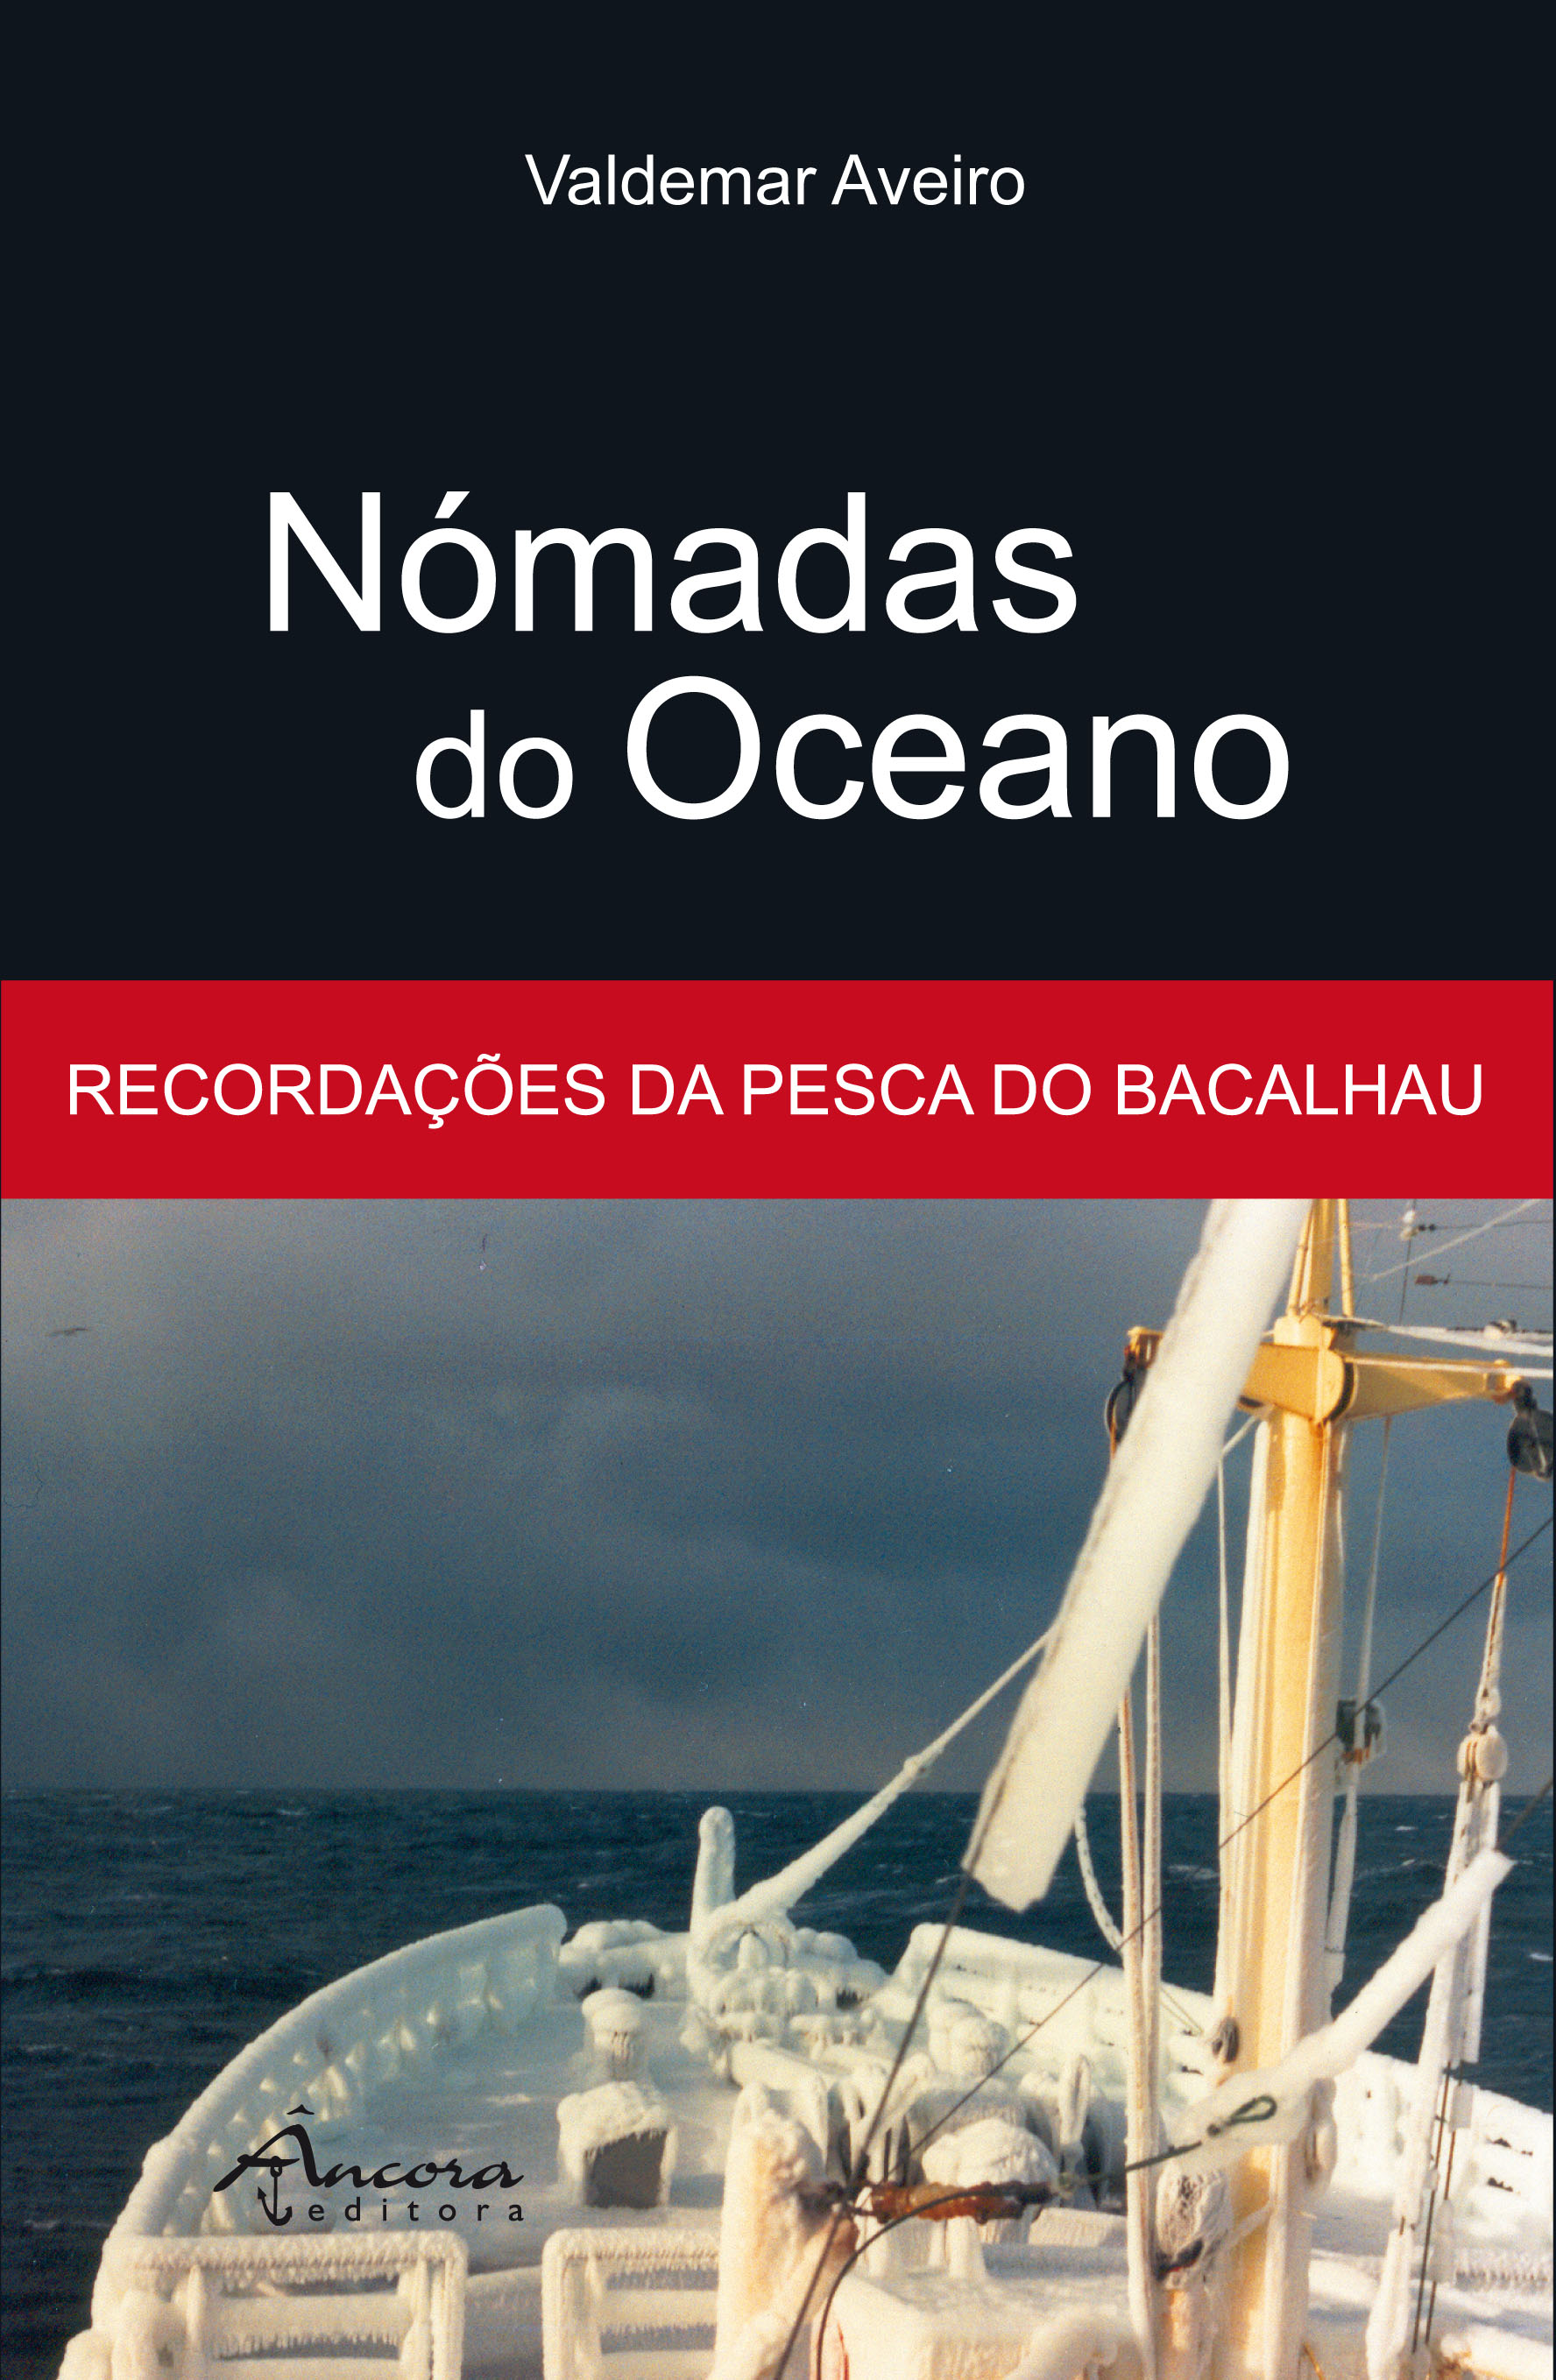 Nómadas do Oceano - Recordações da Pesca do Bacalhau